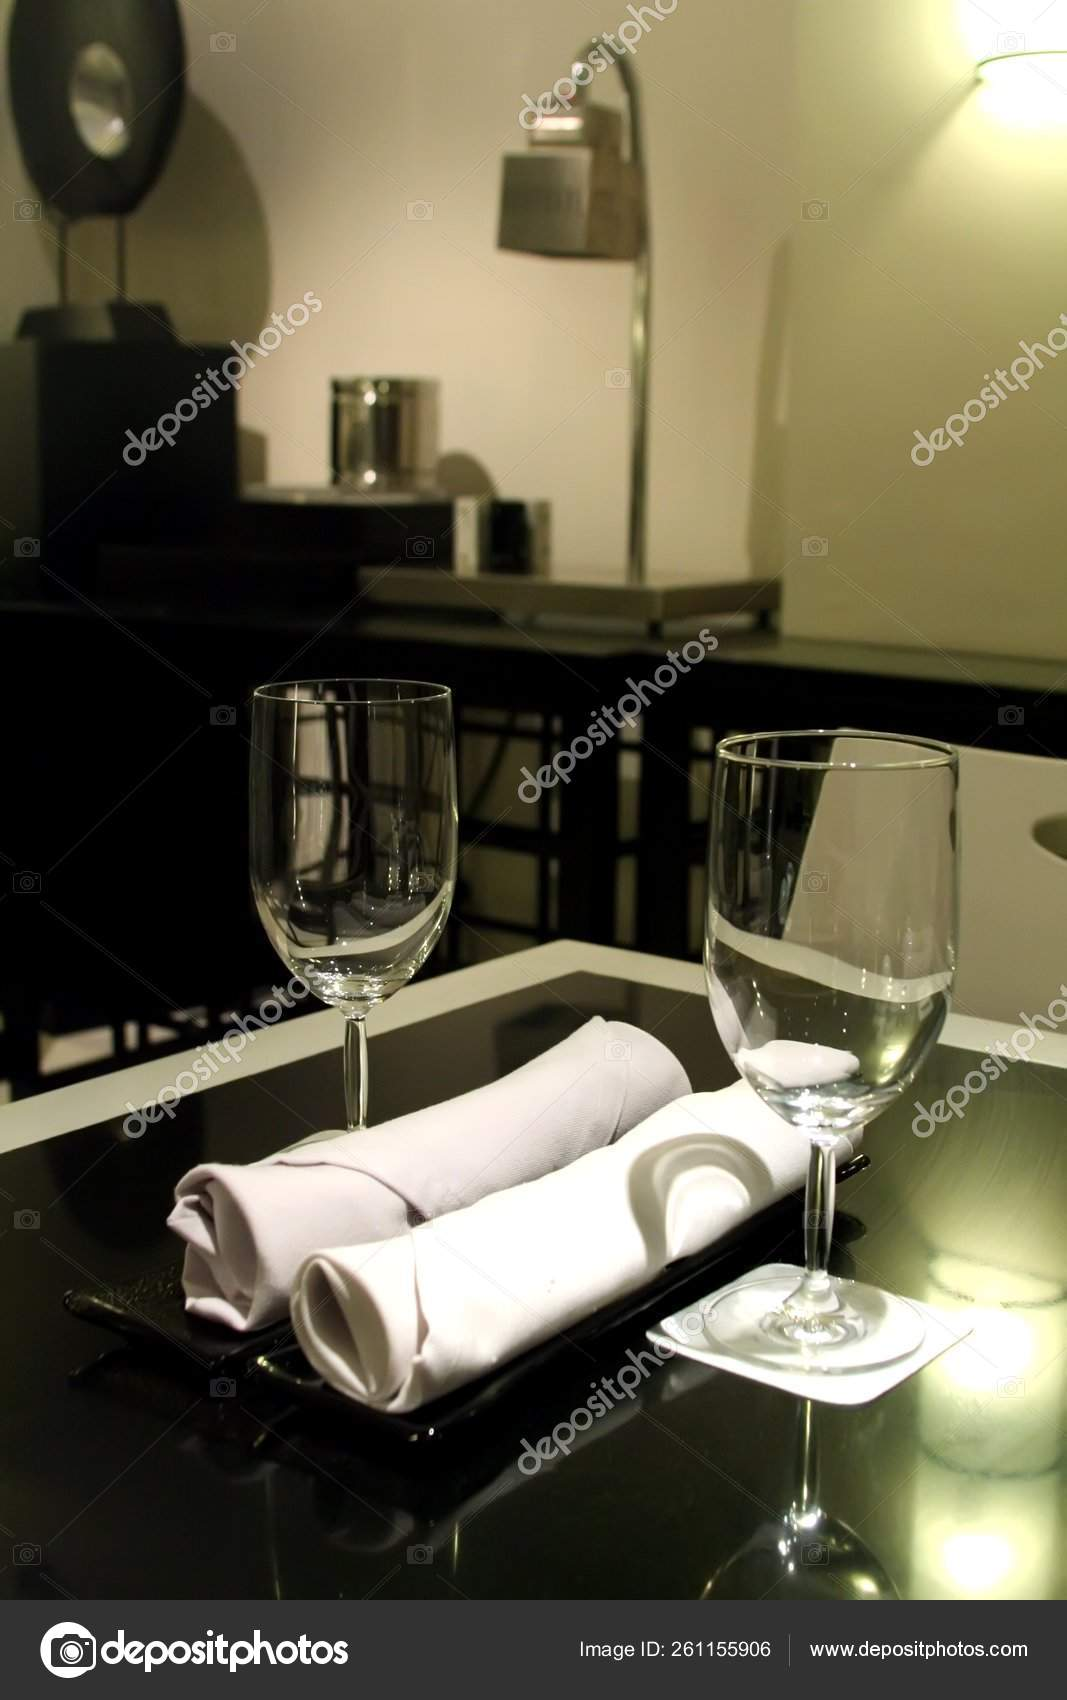 Elegant Restaurant Interior Table Setting Black White Theme Stock Photo C Yayimages 261155906,Good Plants For Office Spaces